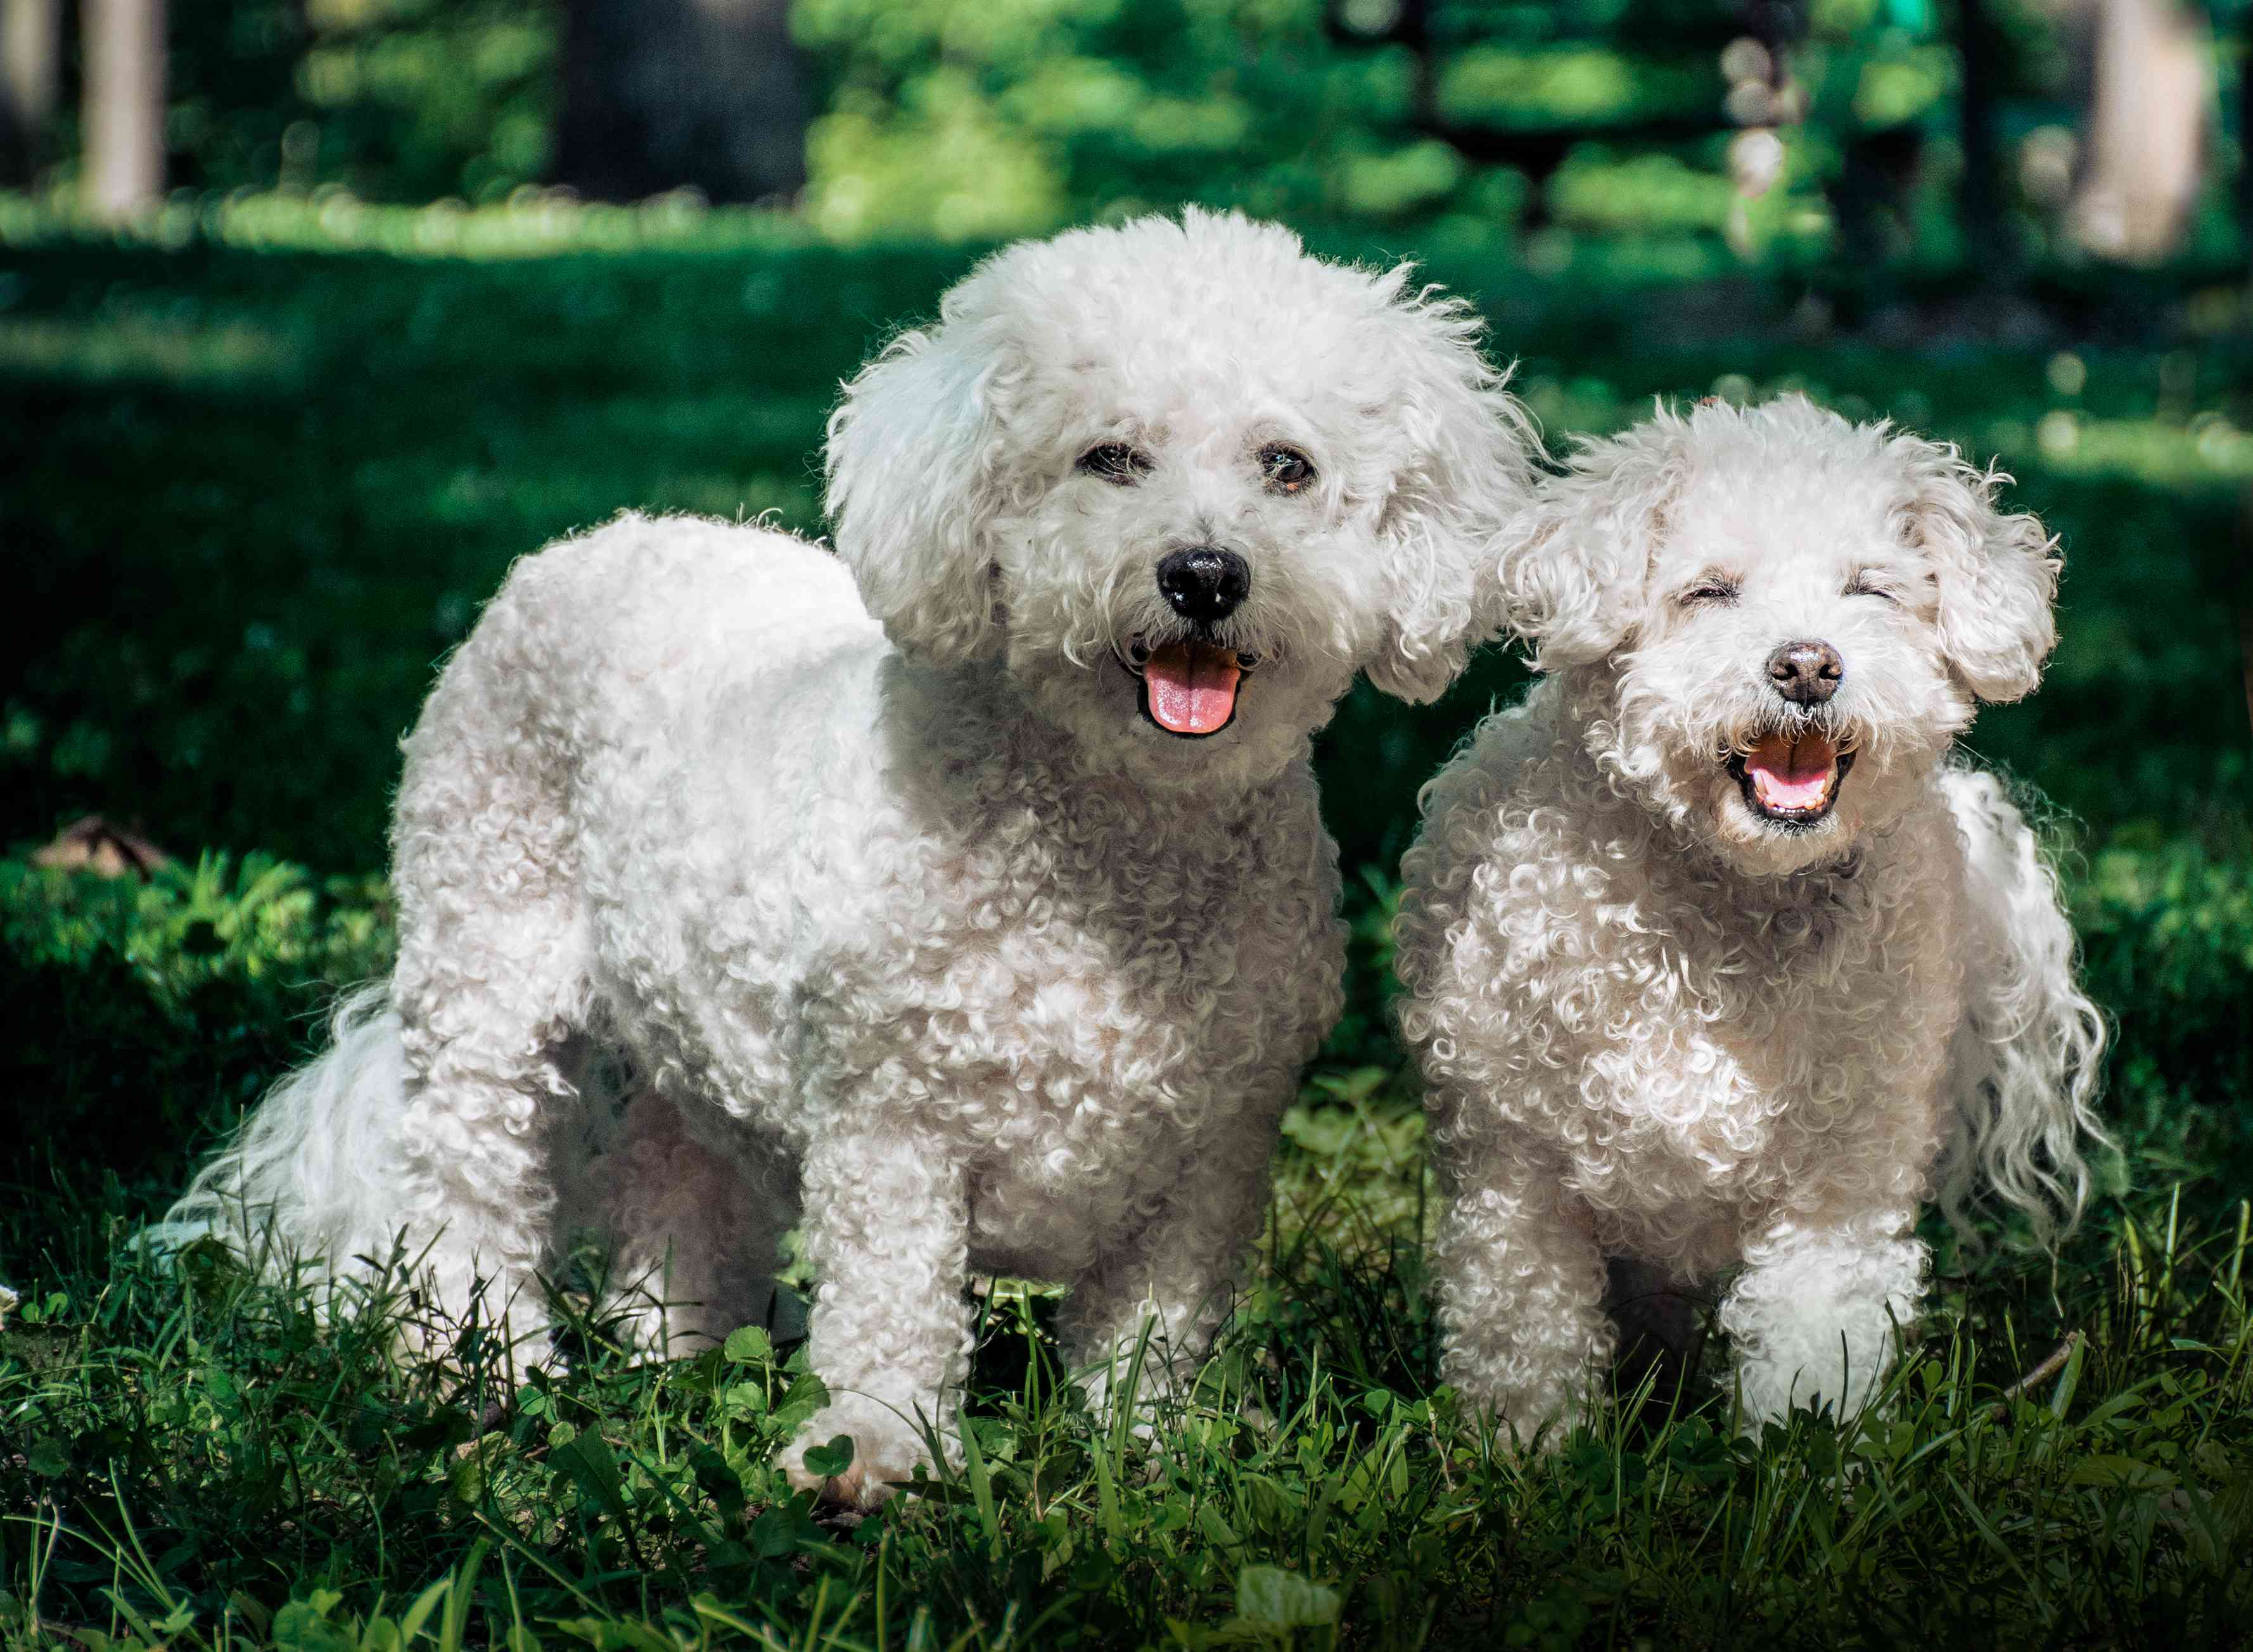 Two Bichon Frise dogs on the grass.